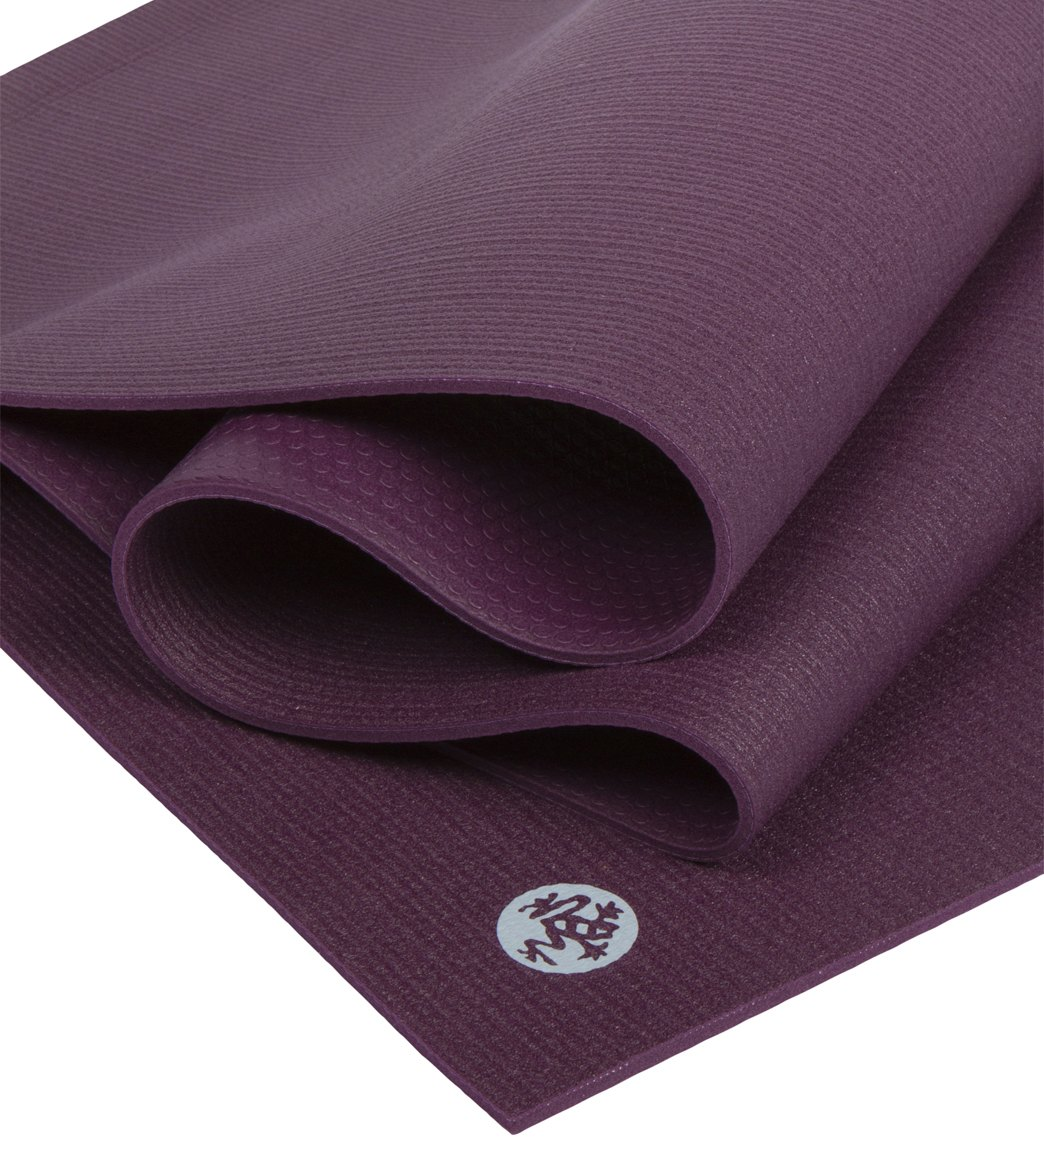 Manduka Prolite Long Yoga Mat 79 4 5mm At Yogaoutlet Com Free